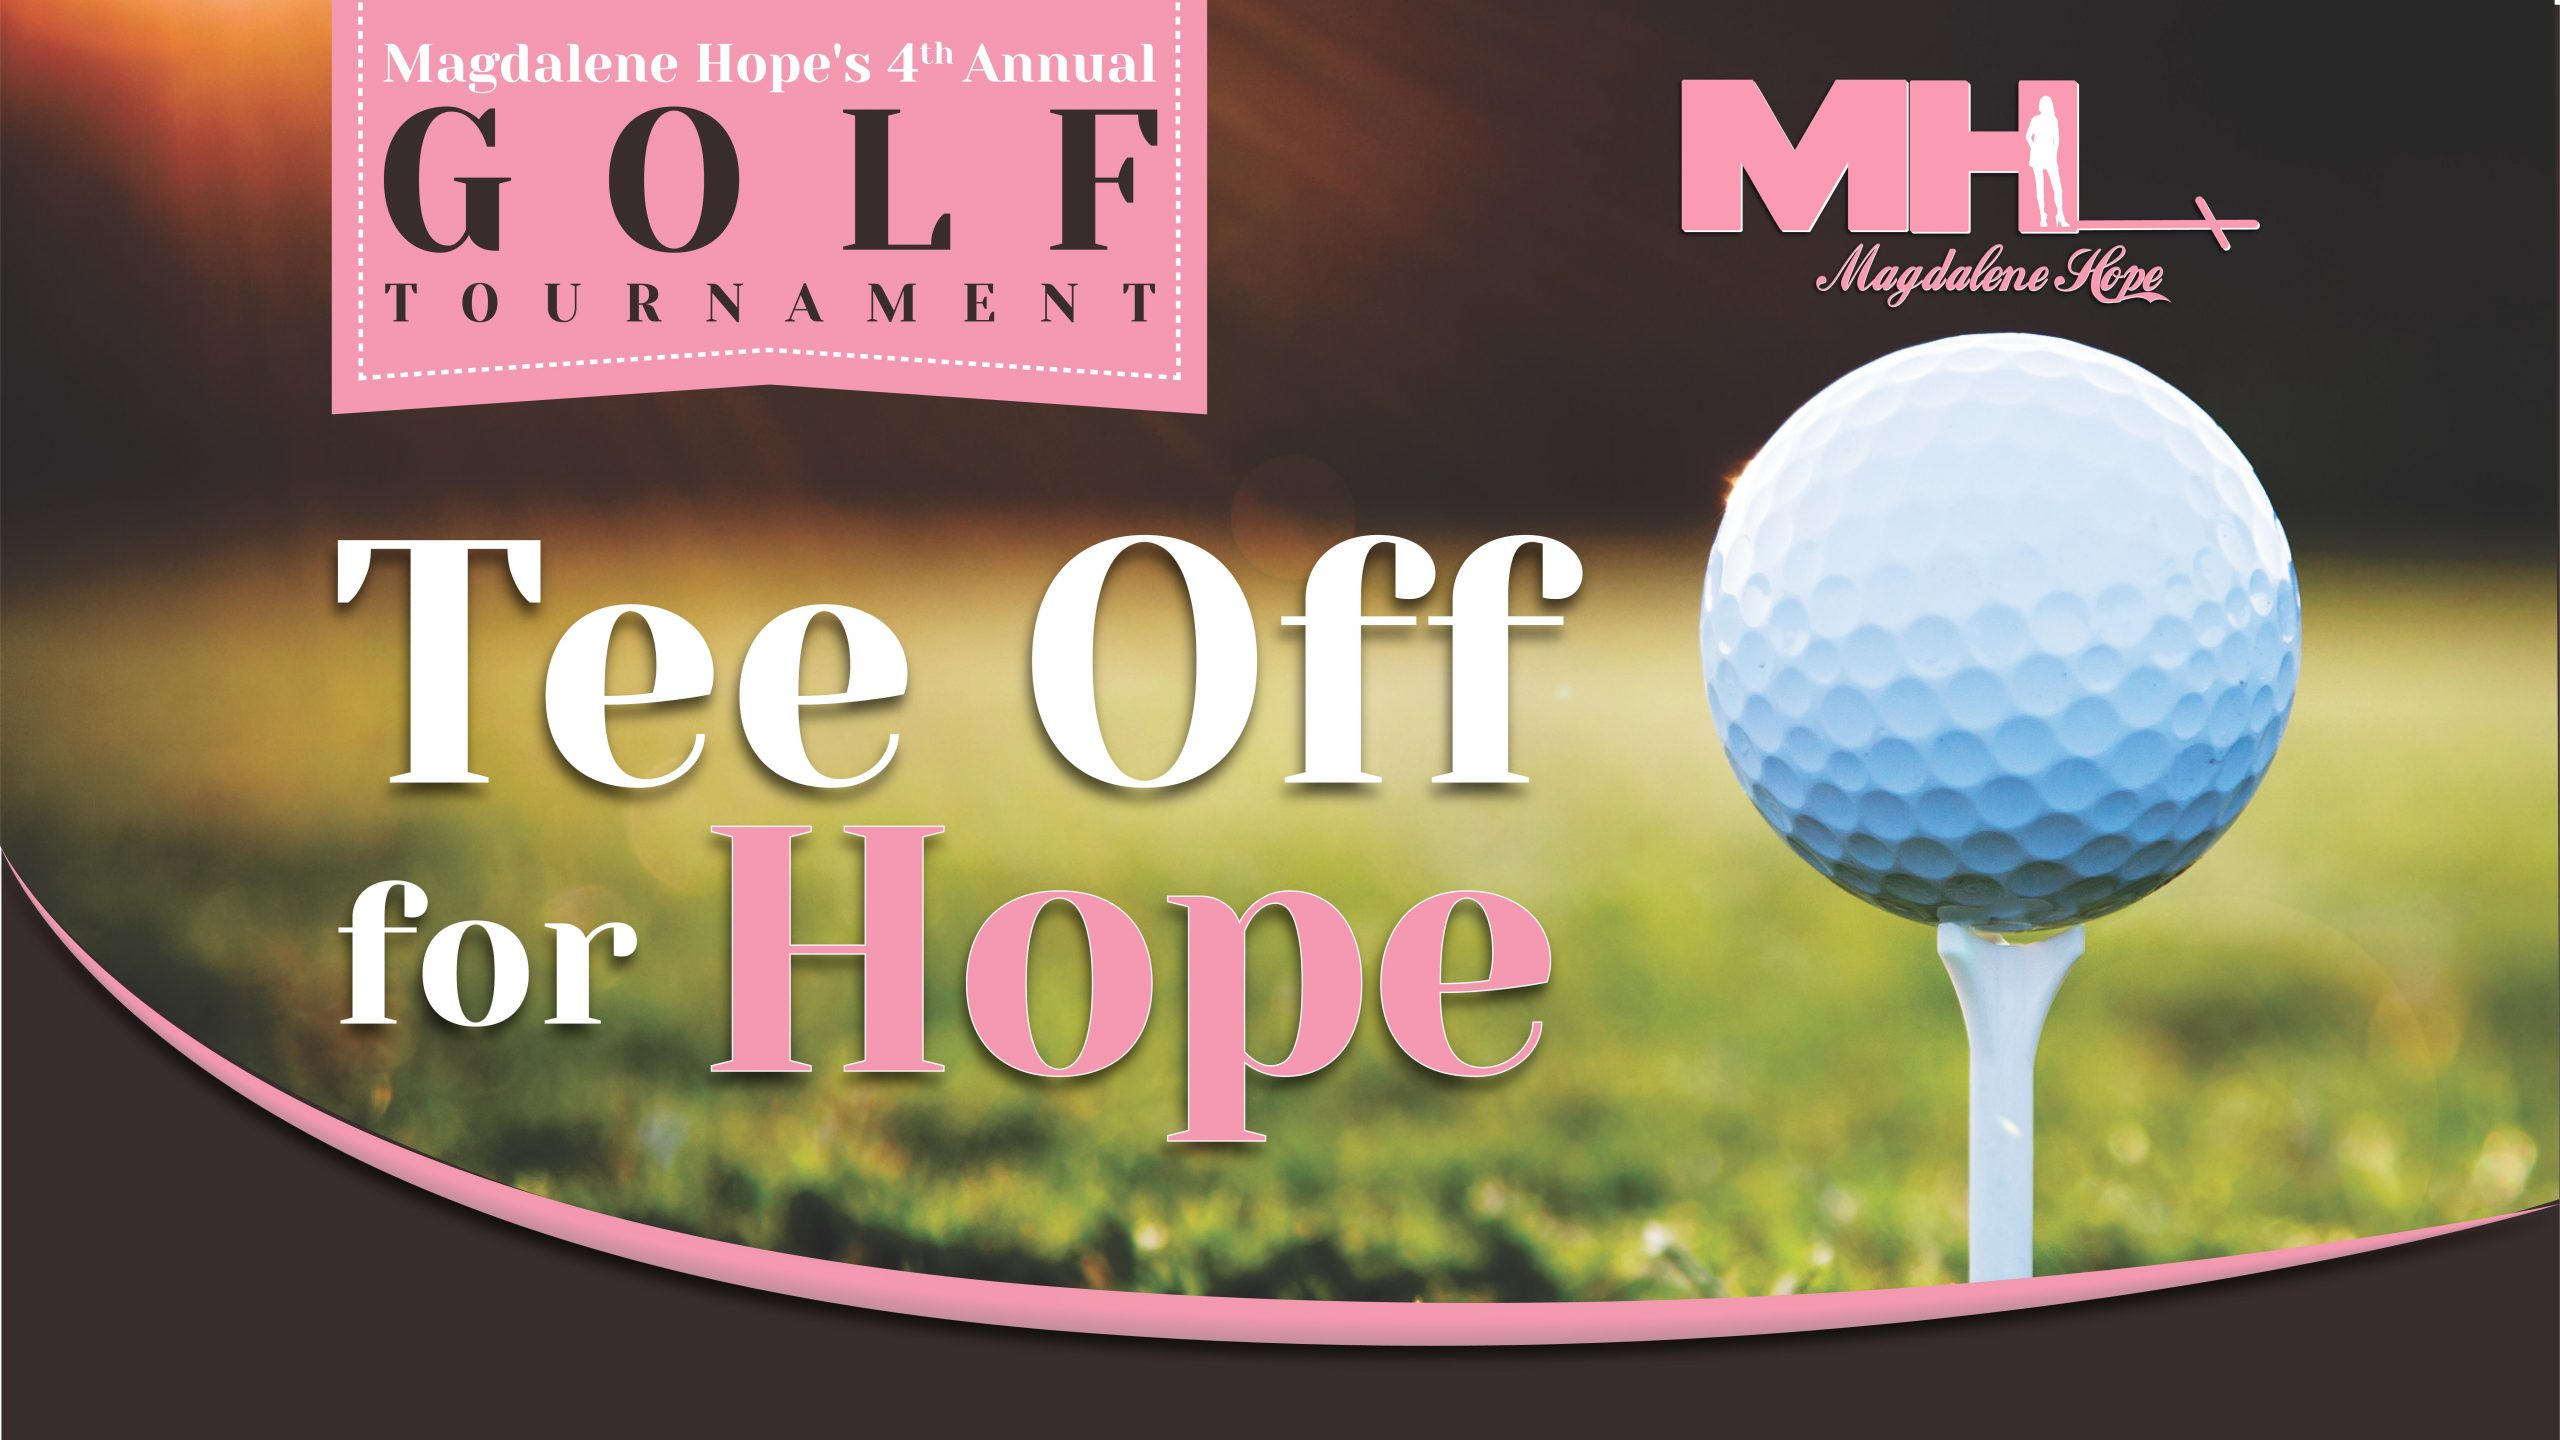 Magdalene Hope's 4th Annual 'Tee Off For Hope' Golf Tournament